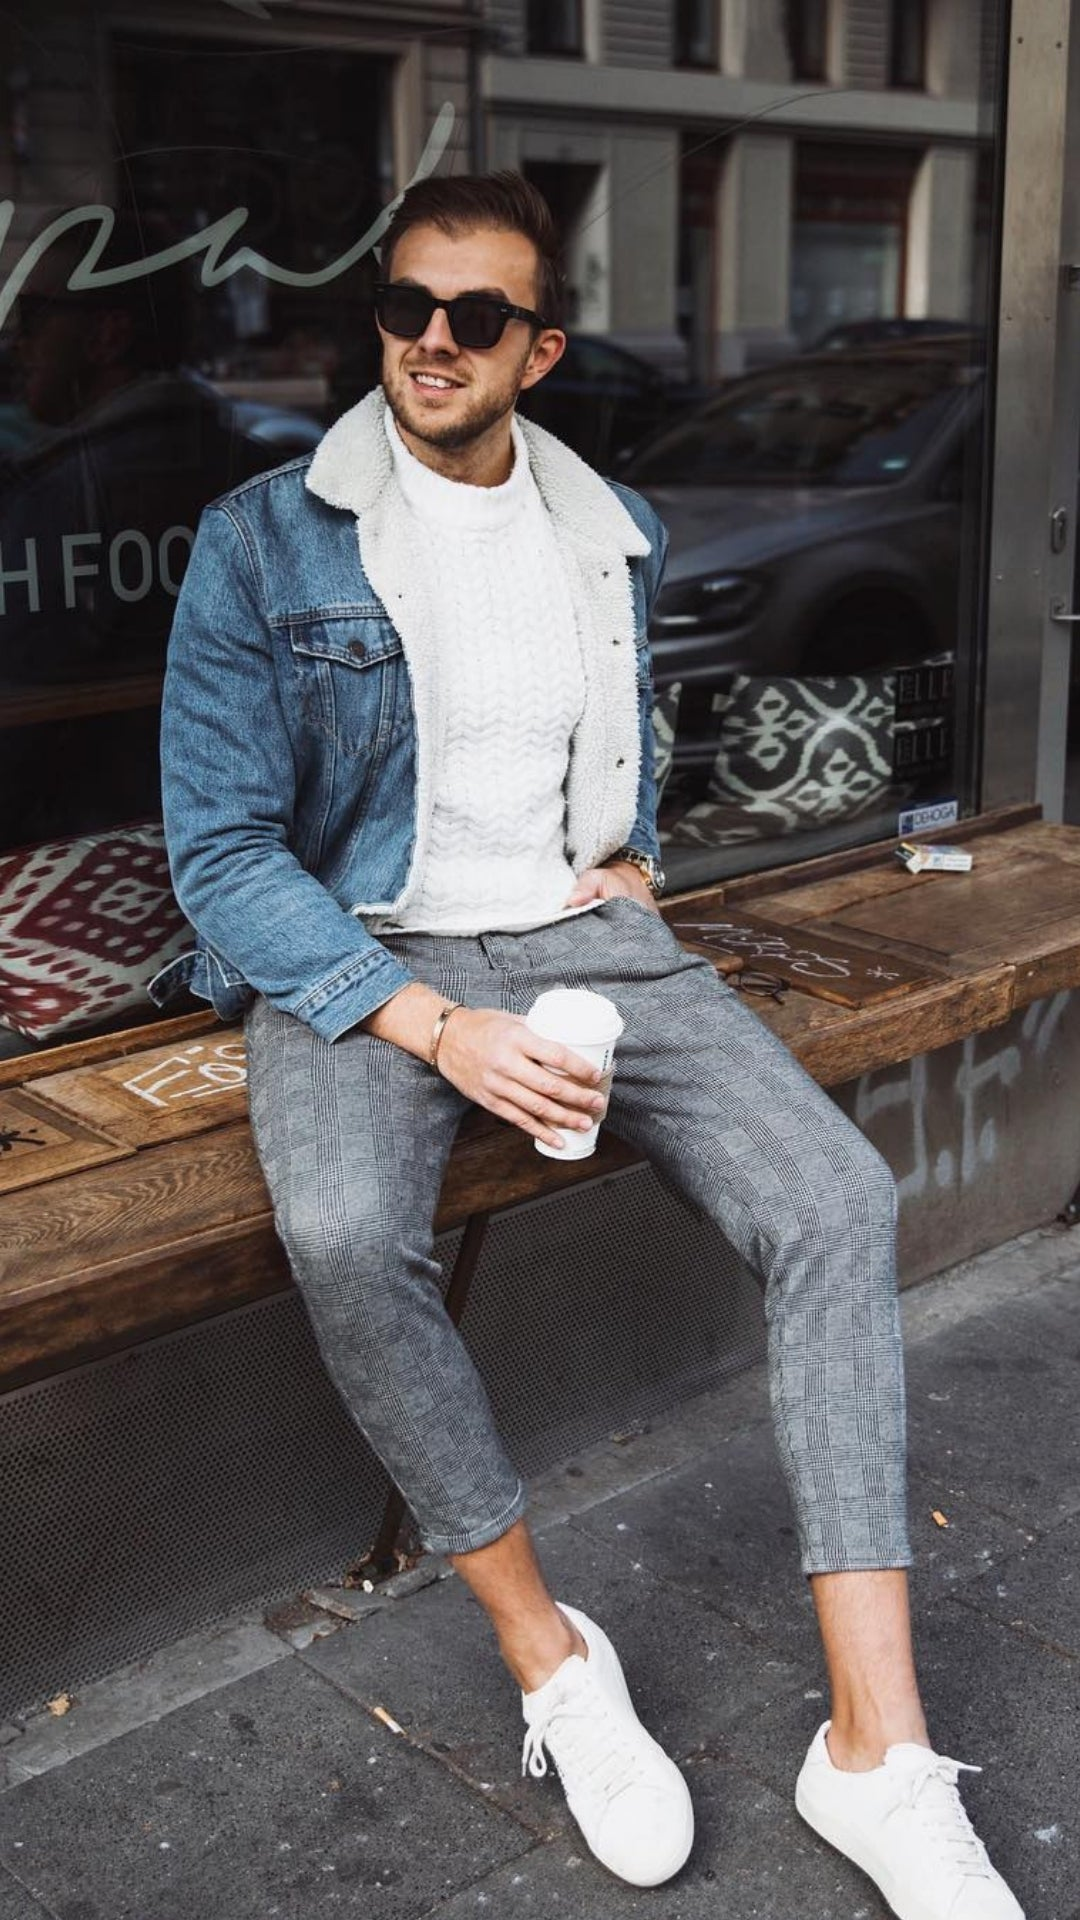 5 Street Ready Outfits To Copy Now #streetstyle #mensfashion